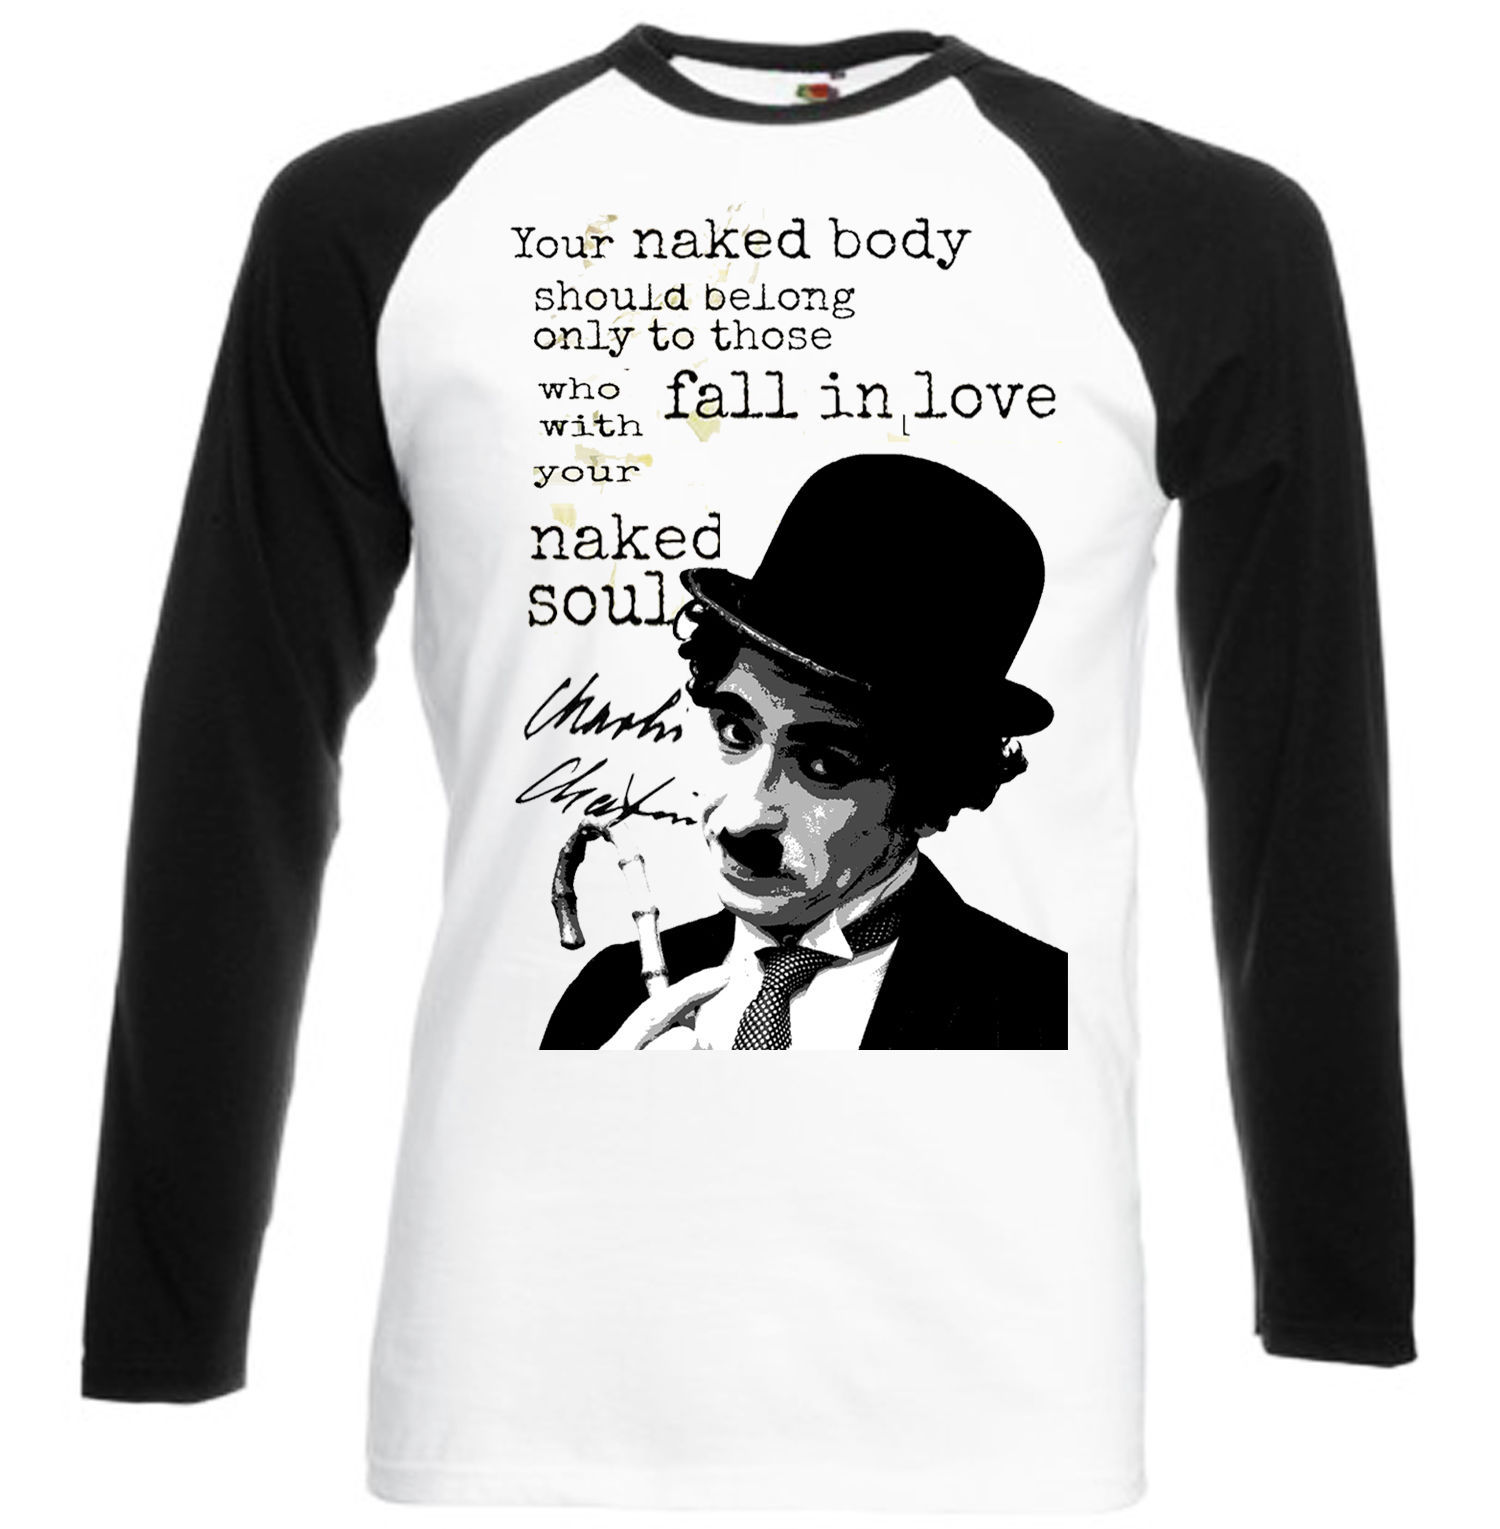 CHARLIE CHAPLIN YOUR NAKED BODY QUOTE   - NEW BASEBALL TSHIRT S-M-L-XL-XXL - $39.25